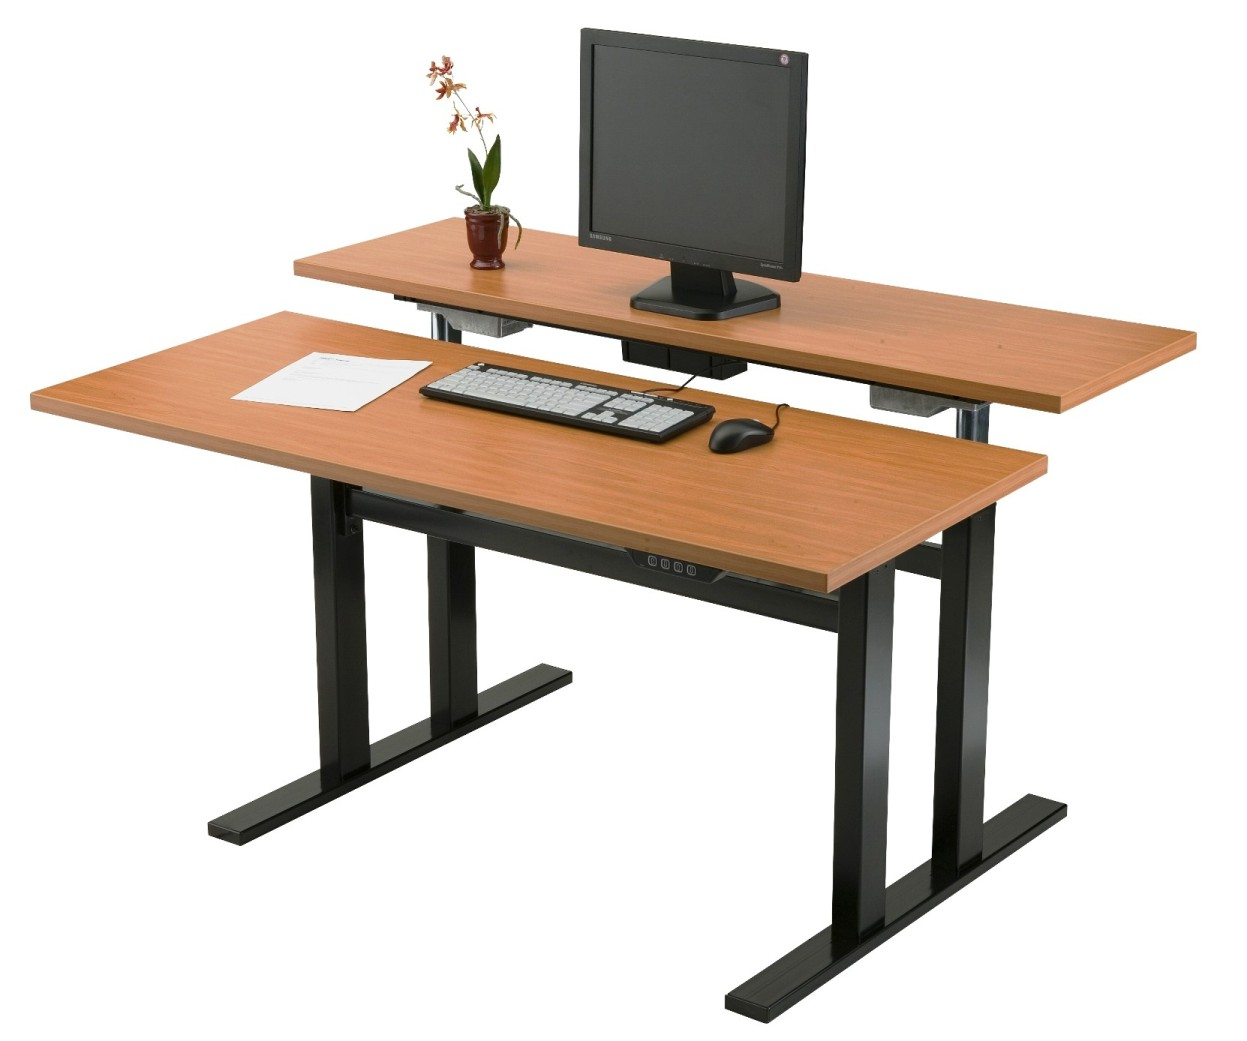 https://sep.yimg.com/ay/eca/ero-standing-desk-adjustable-computer-desk-twn-17.jpg